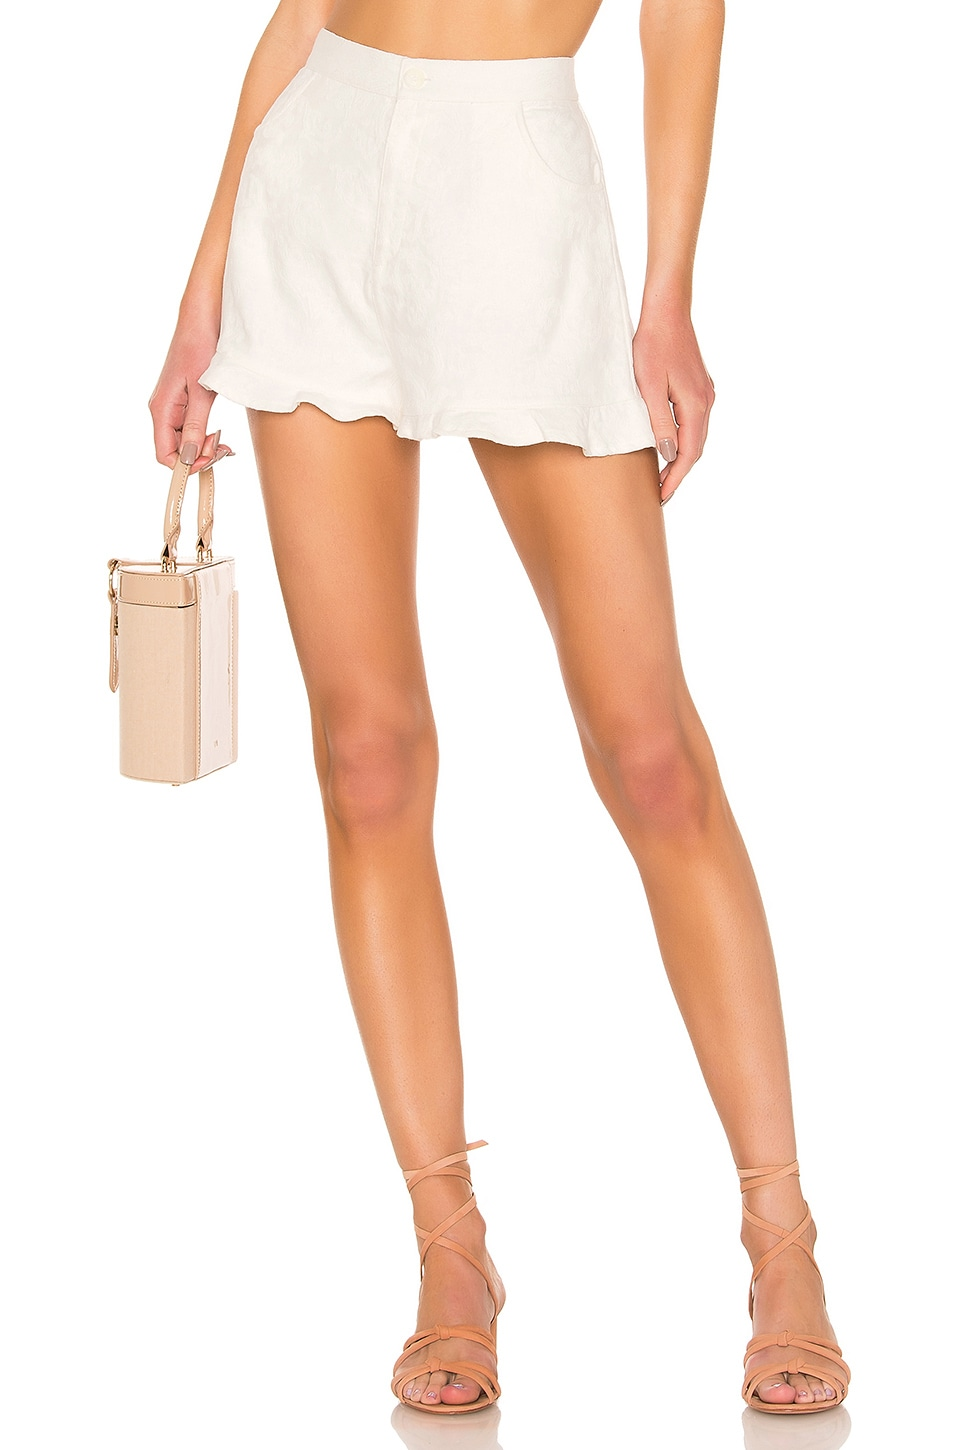 MINKPINK Complete Clarity Frill Short in White